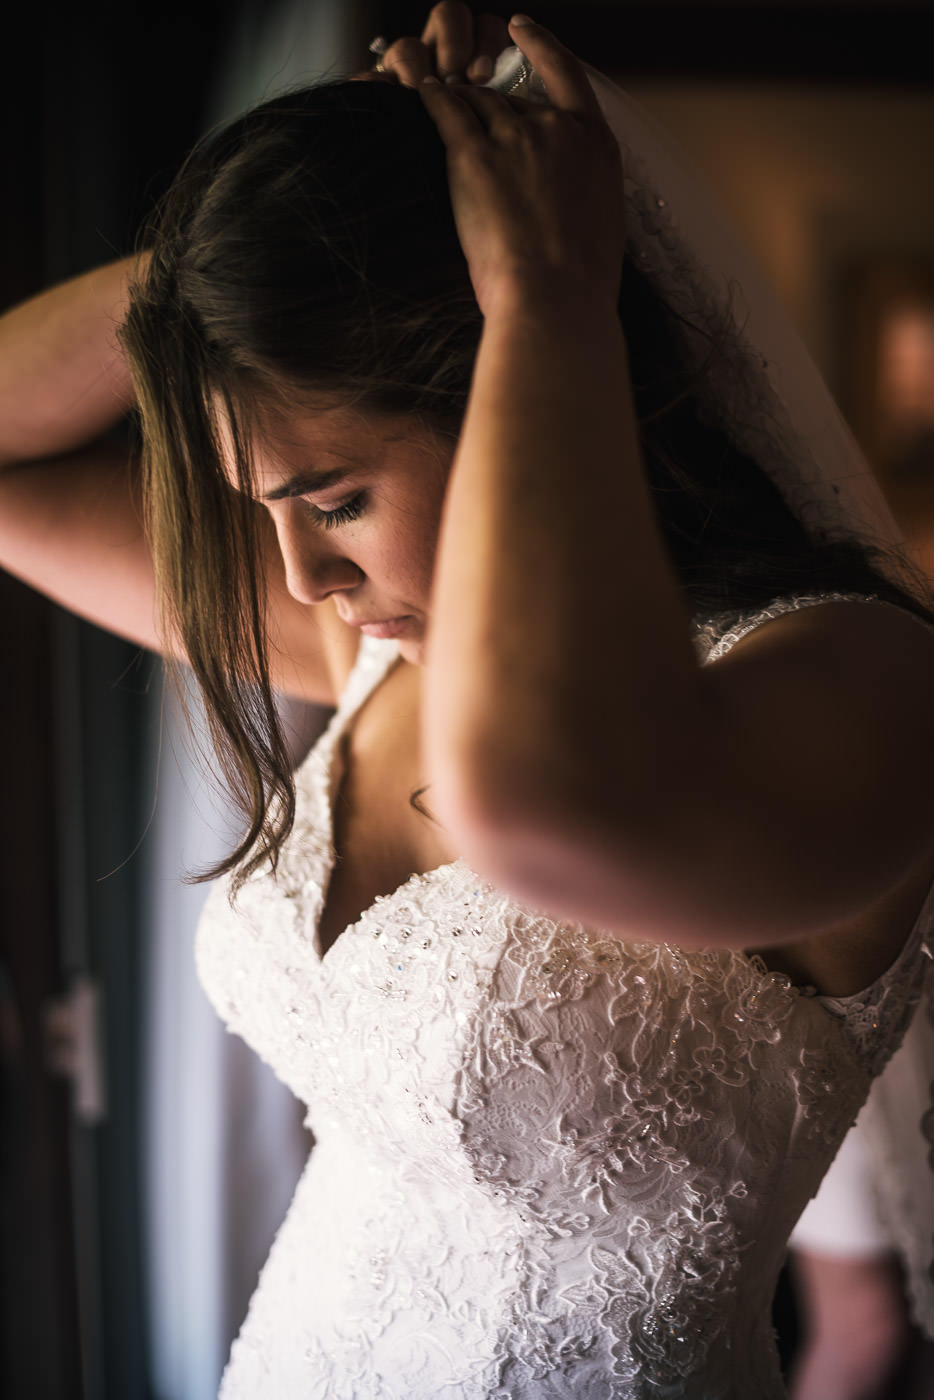 Bride fixes her wedding veil before heading of to the chapel.